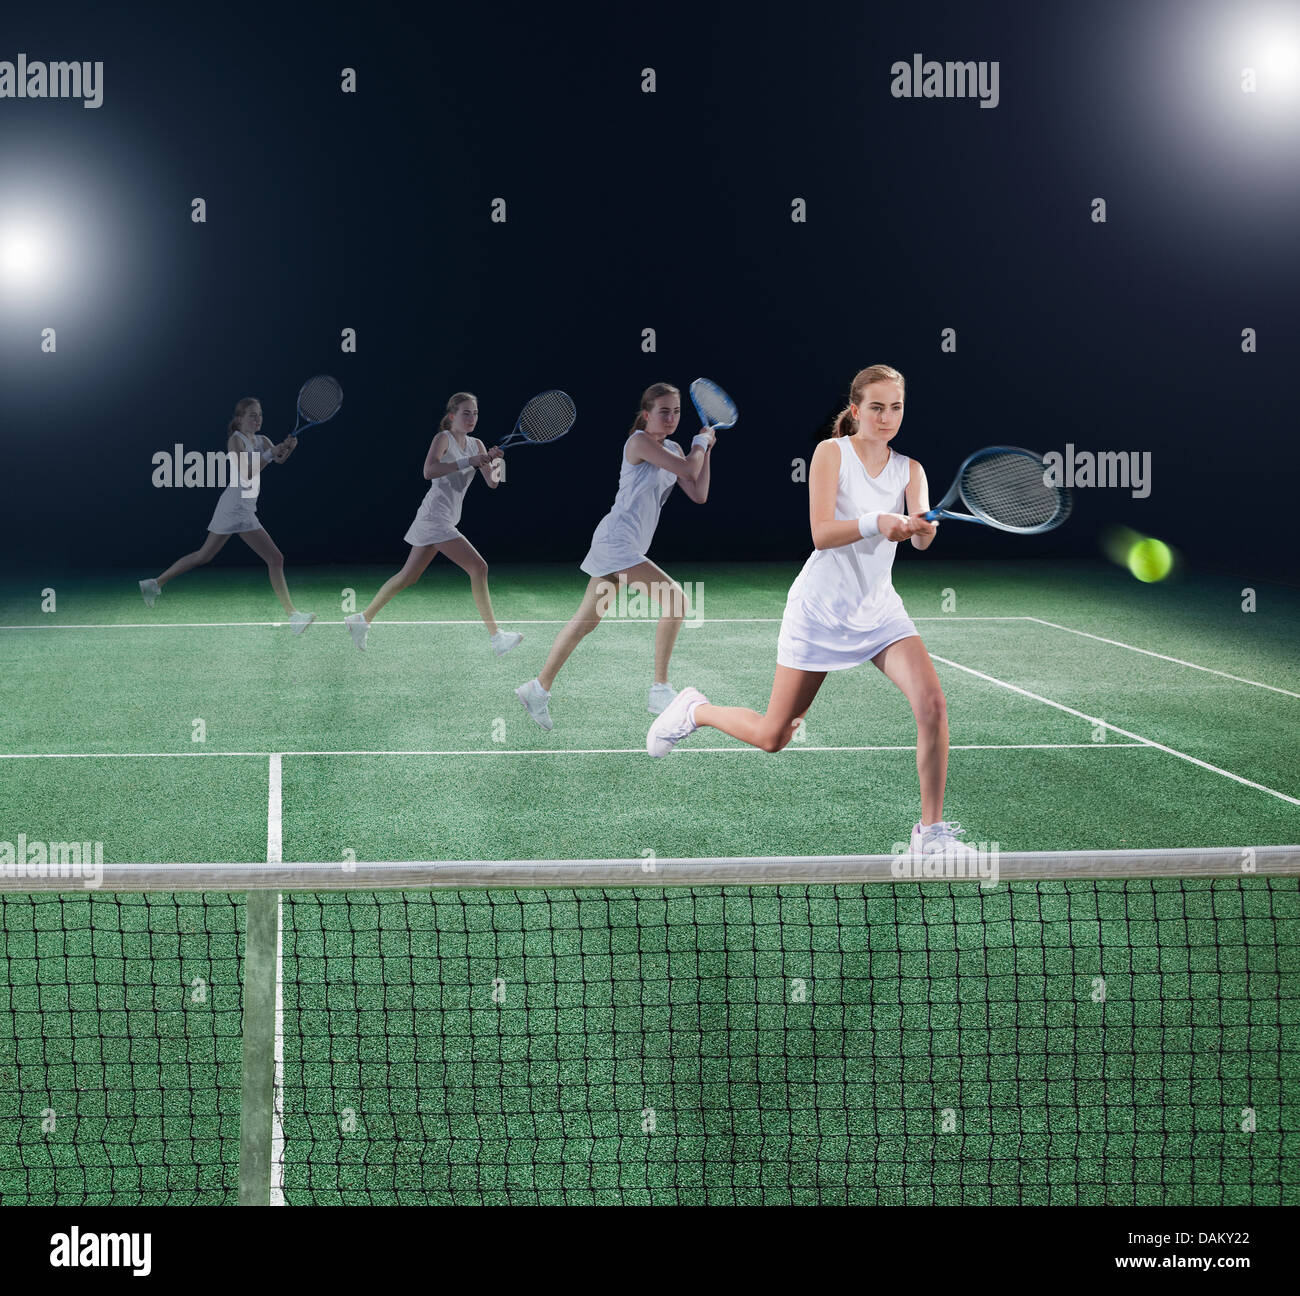 Multiple exposure of tennis player hitting ball on court - Stock Image